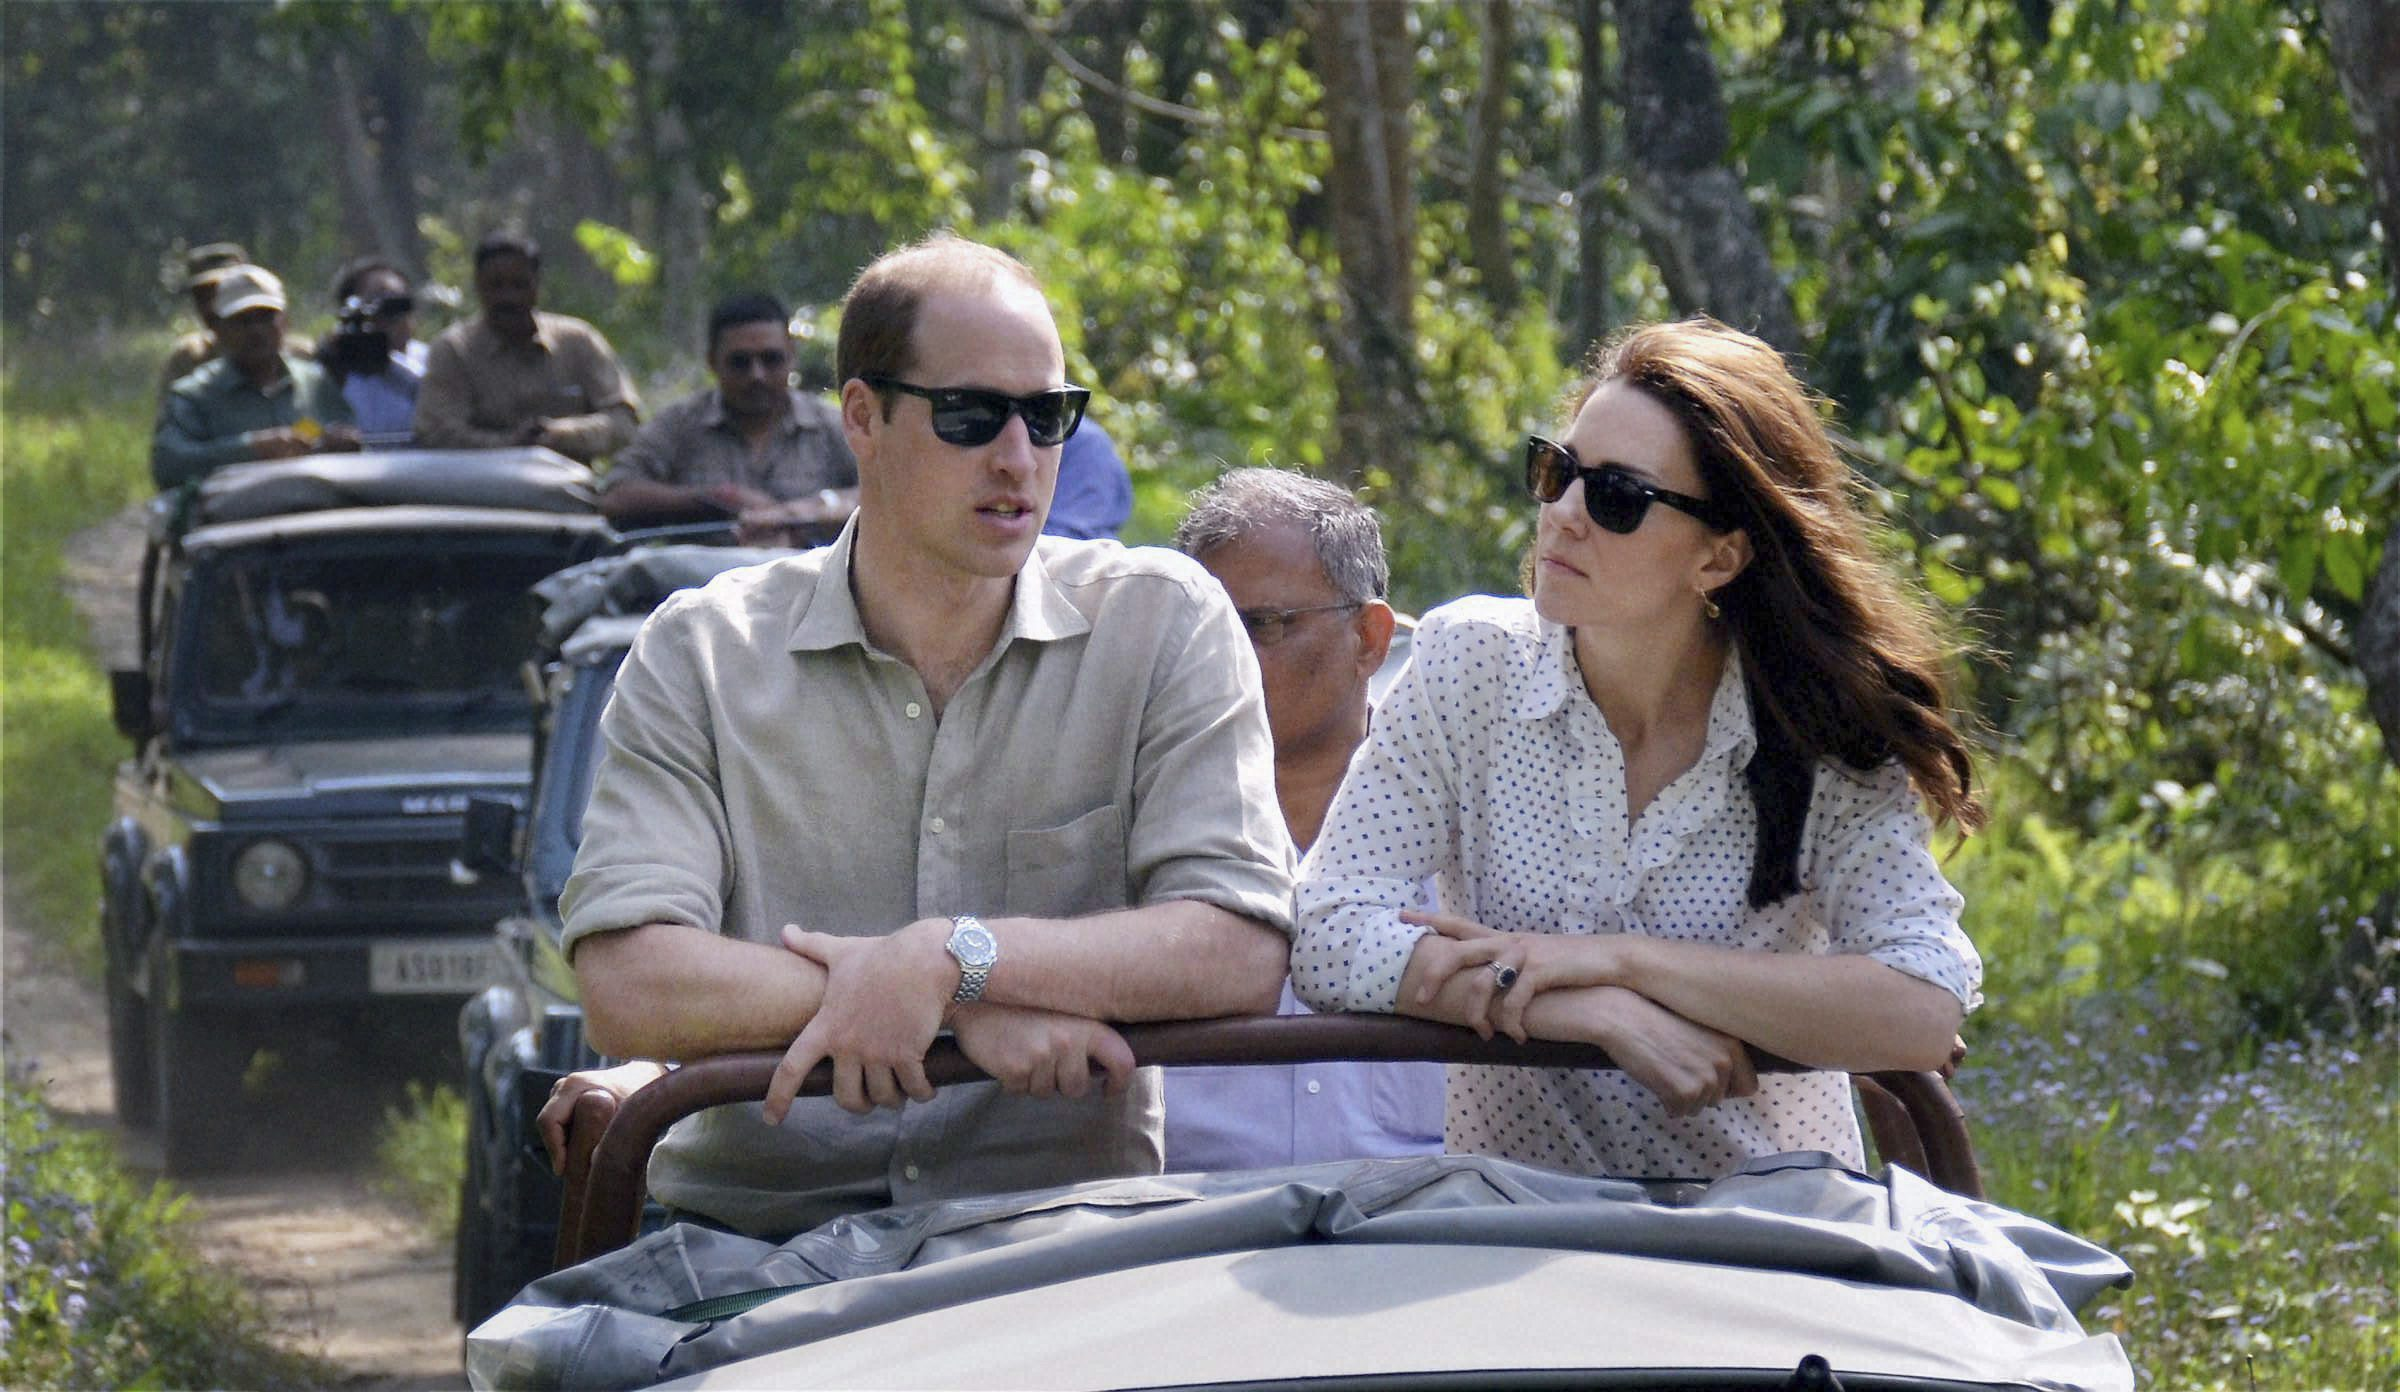 Britain's Prince William, left, and Kate, the Duchess of Cambridge take an open vehicle safari inside the Kaziranga National Park, east of Gauhati, northeastern Assam state, India, Wednesday, April 13, 2016. The royal couple spent several hours at the Kaziranga National Park in hopes of drawing attention to the plight of endangered animals, including the park's 2,200-population of a rare, one-horned rhinos.(Pool photo via AP)